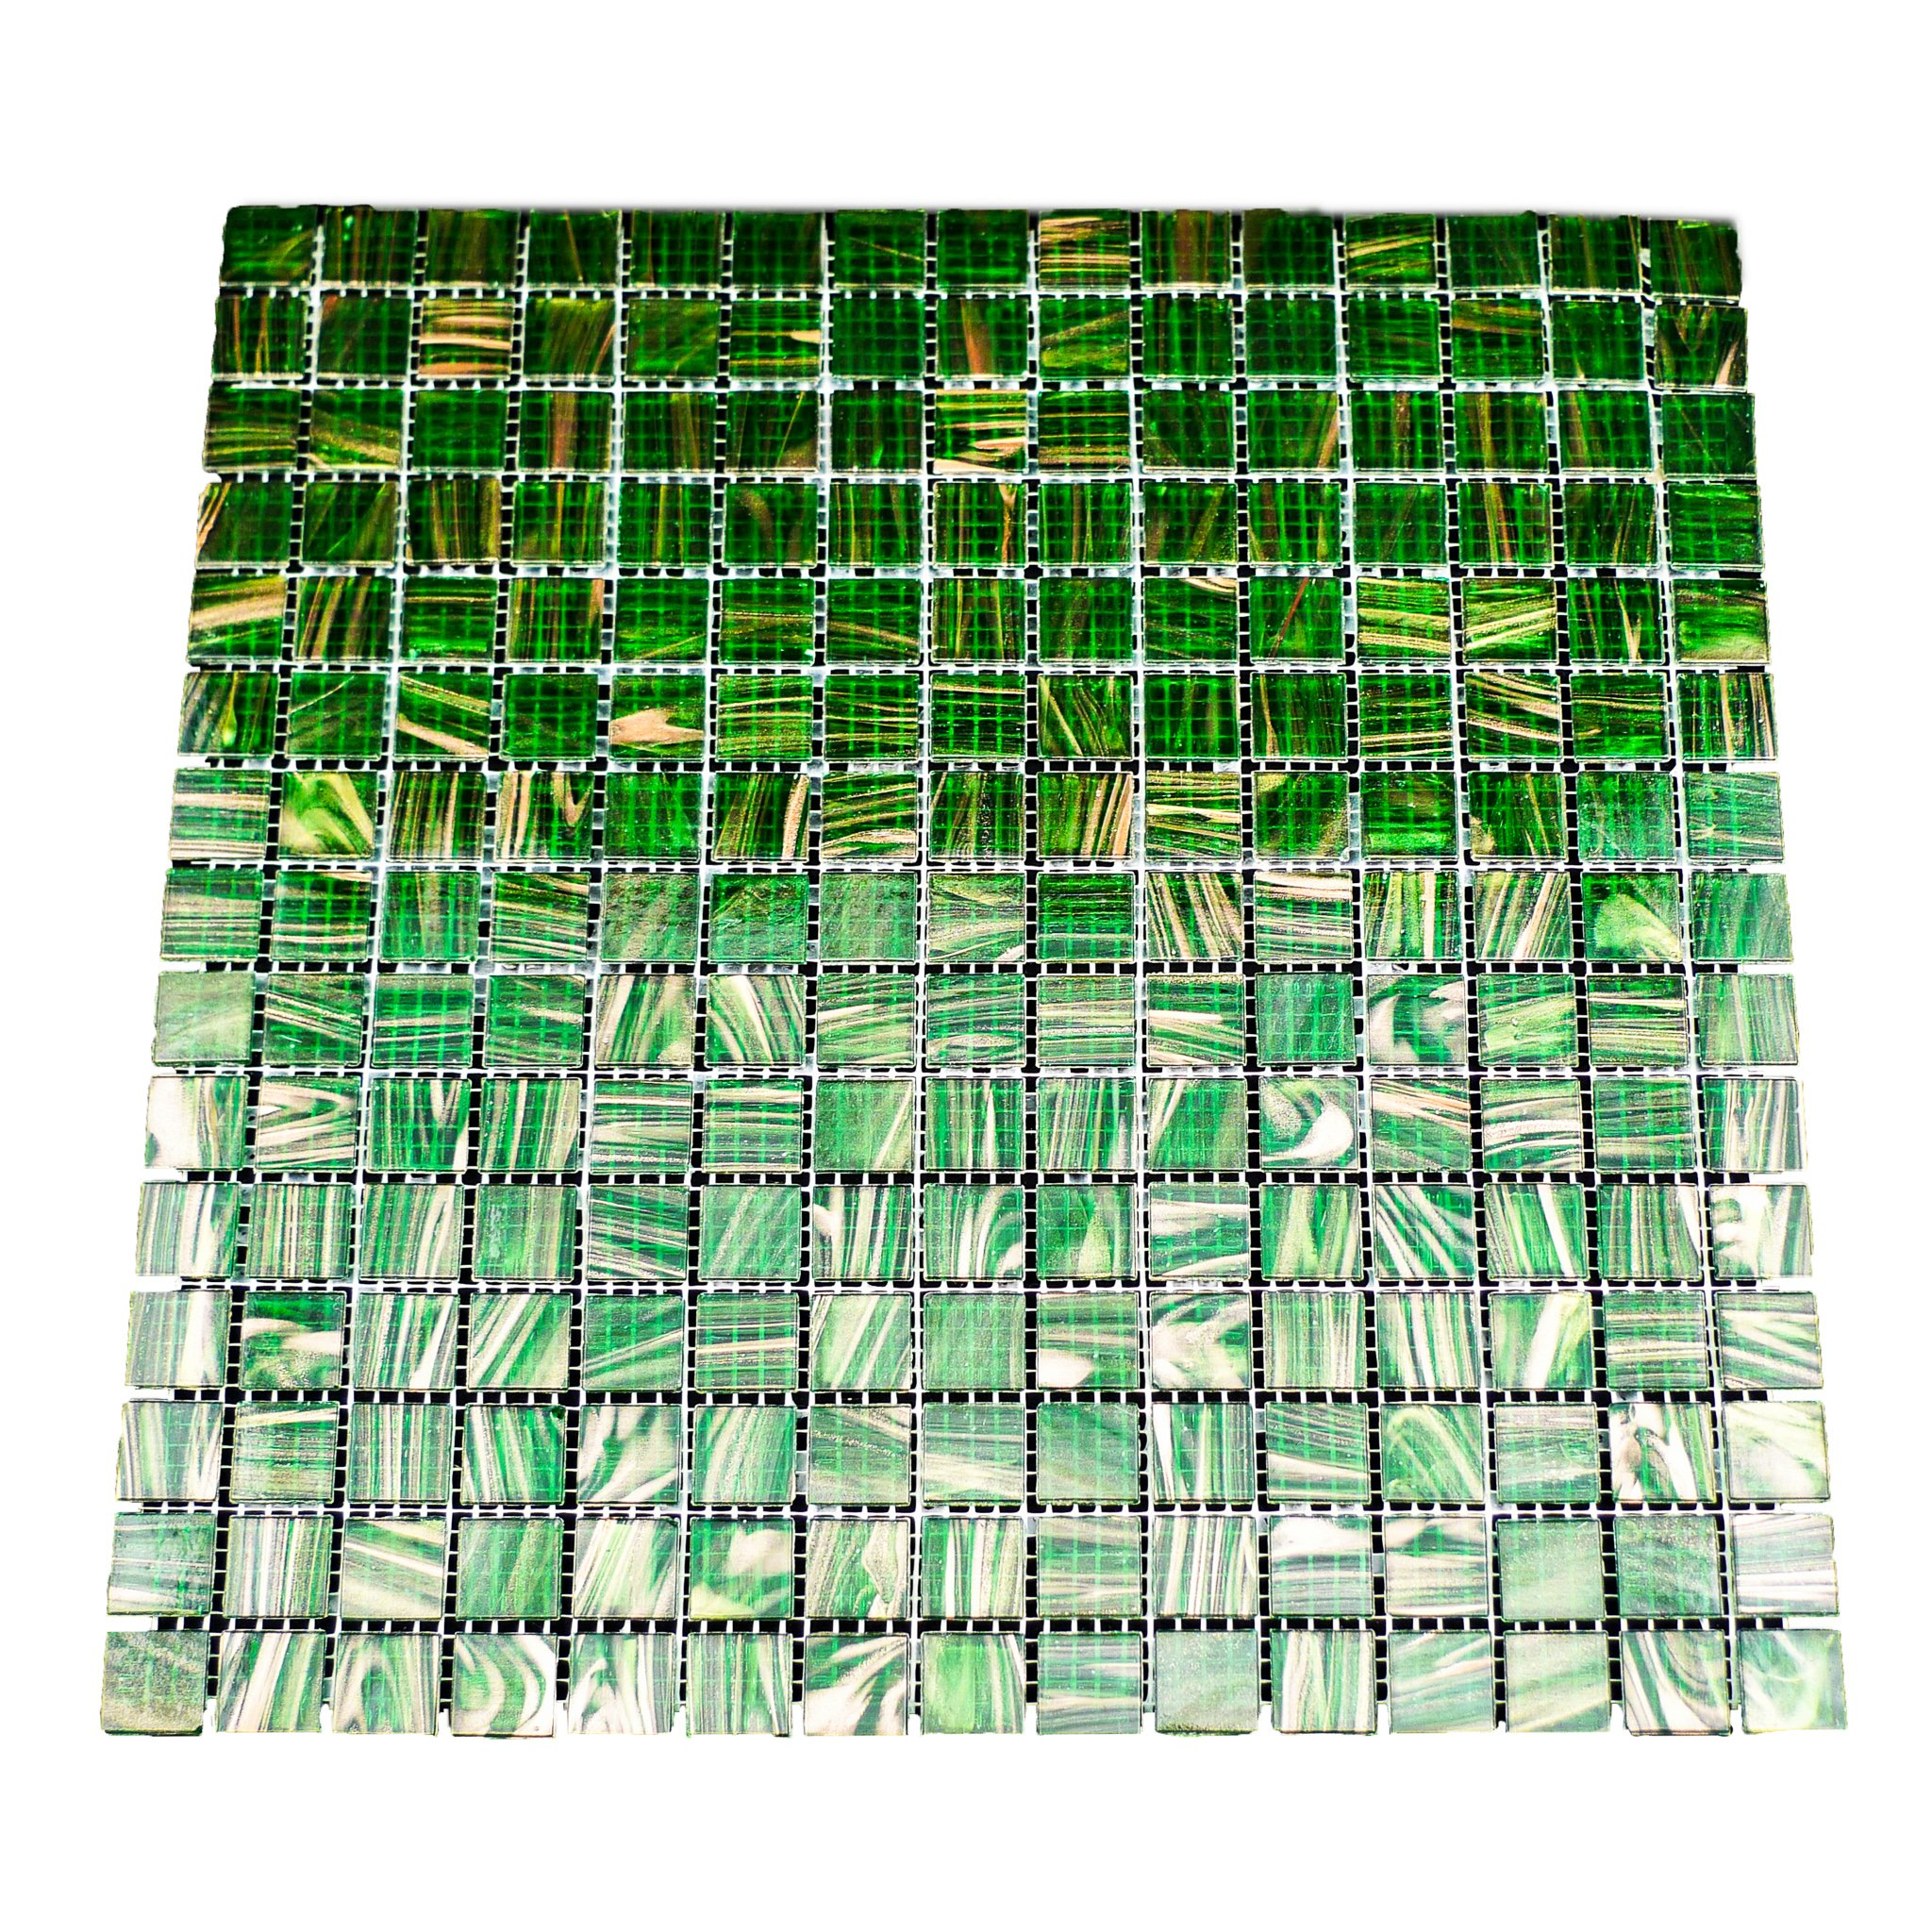 URBN Contemporary Transluscent Green Iridescent Glass Mosaic Tile with Metallic Bronze Highlight for Kitchen and Bath - One Box of 20 Sheets (23 SQ FT) by URBN.tiles